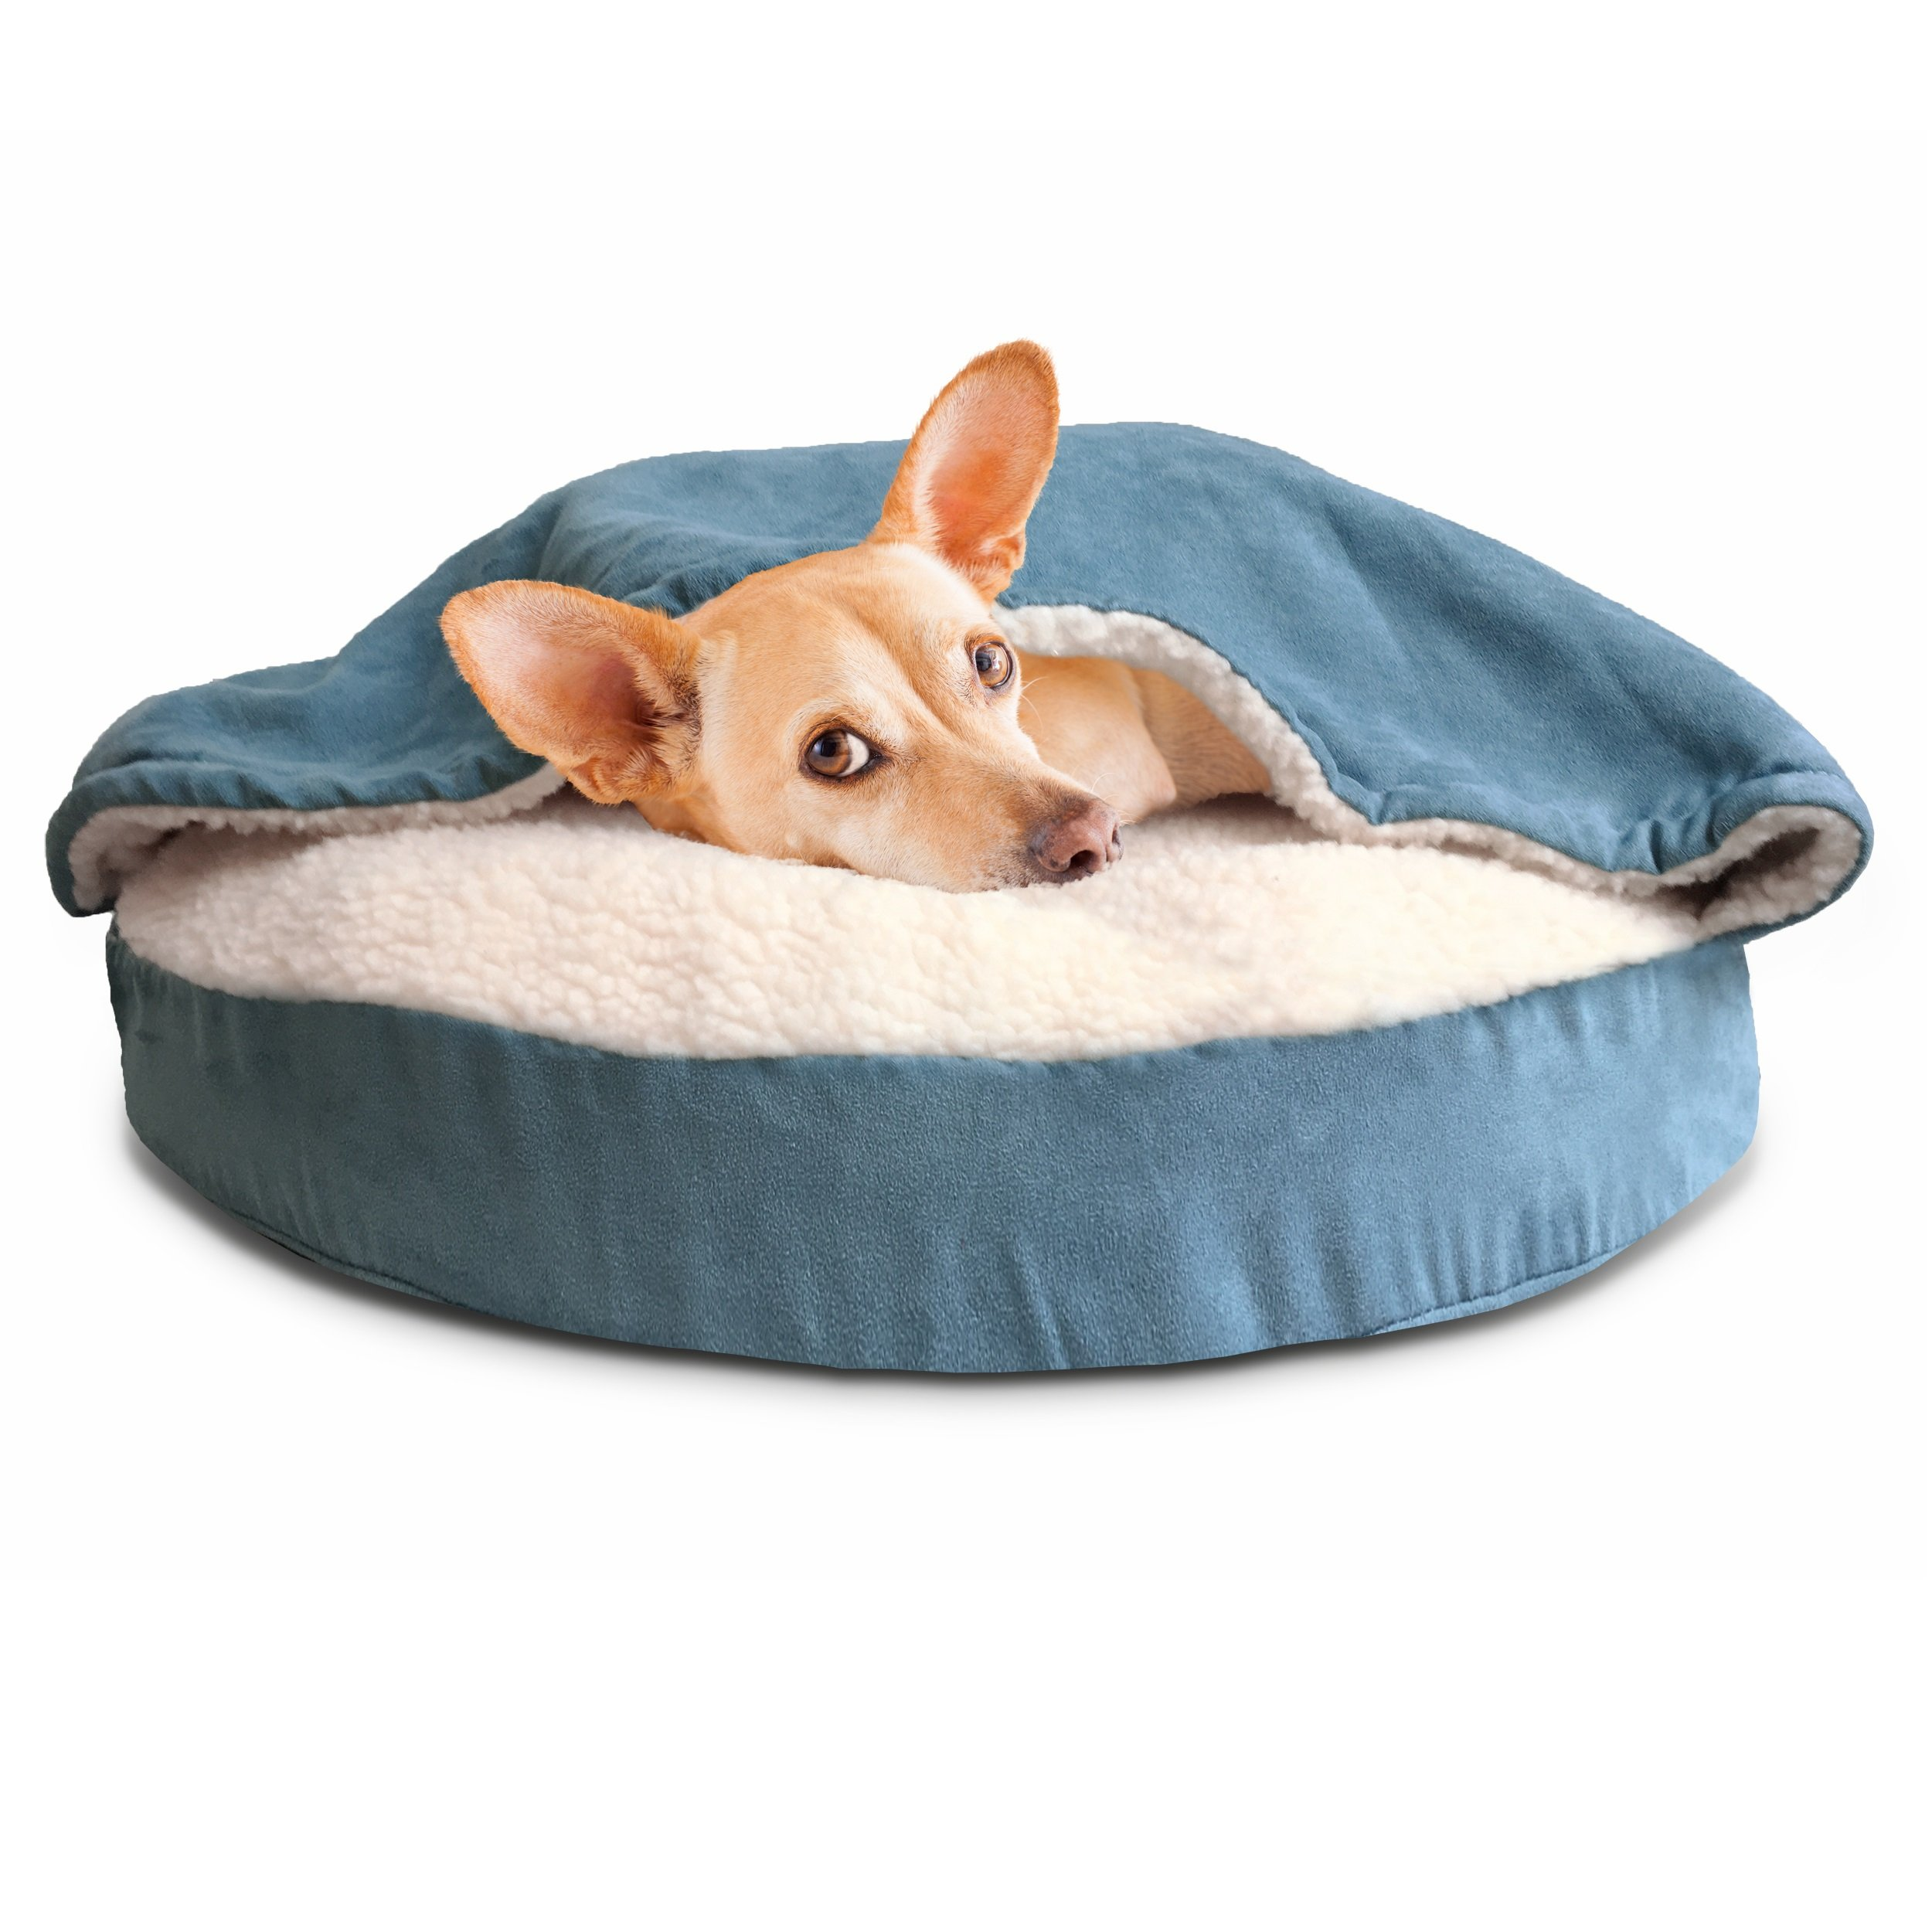 FurHaven Round Snuggery Burrow Pet Bed Blue 26